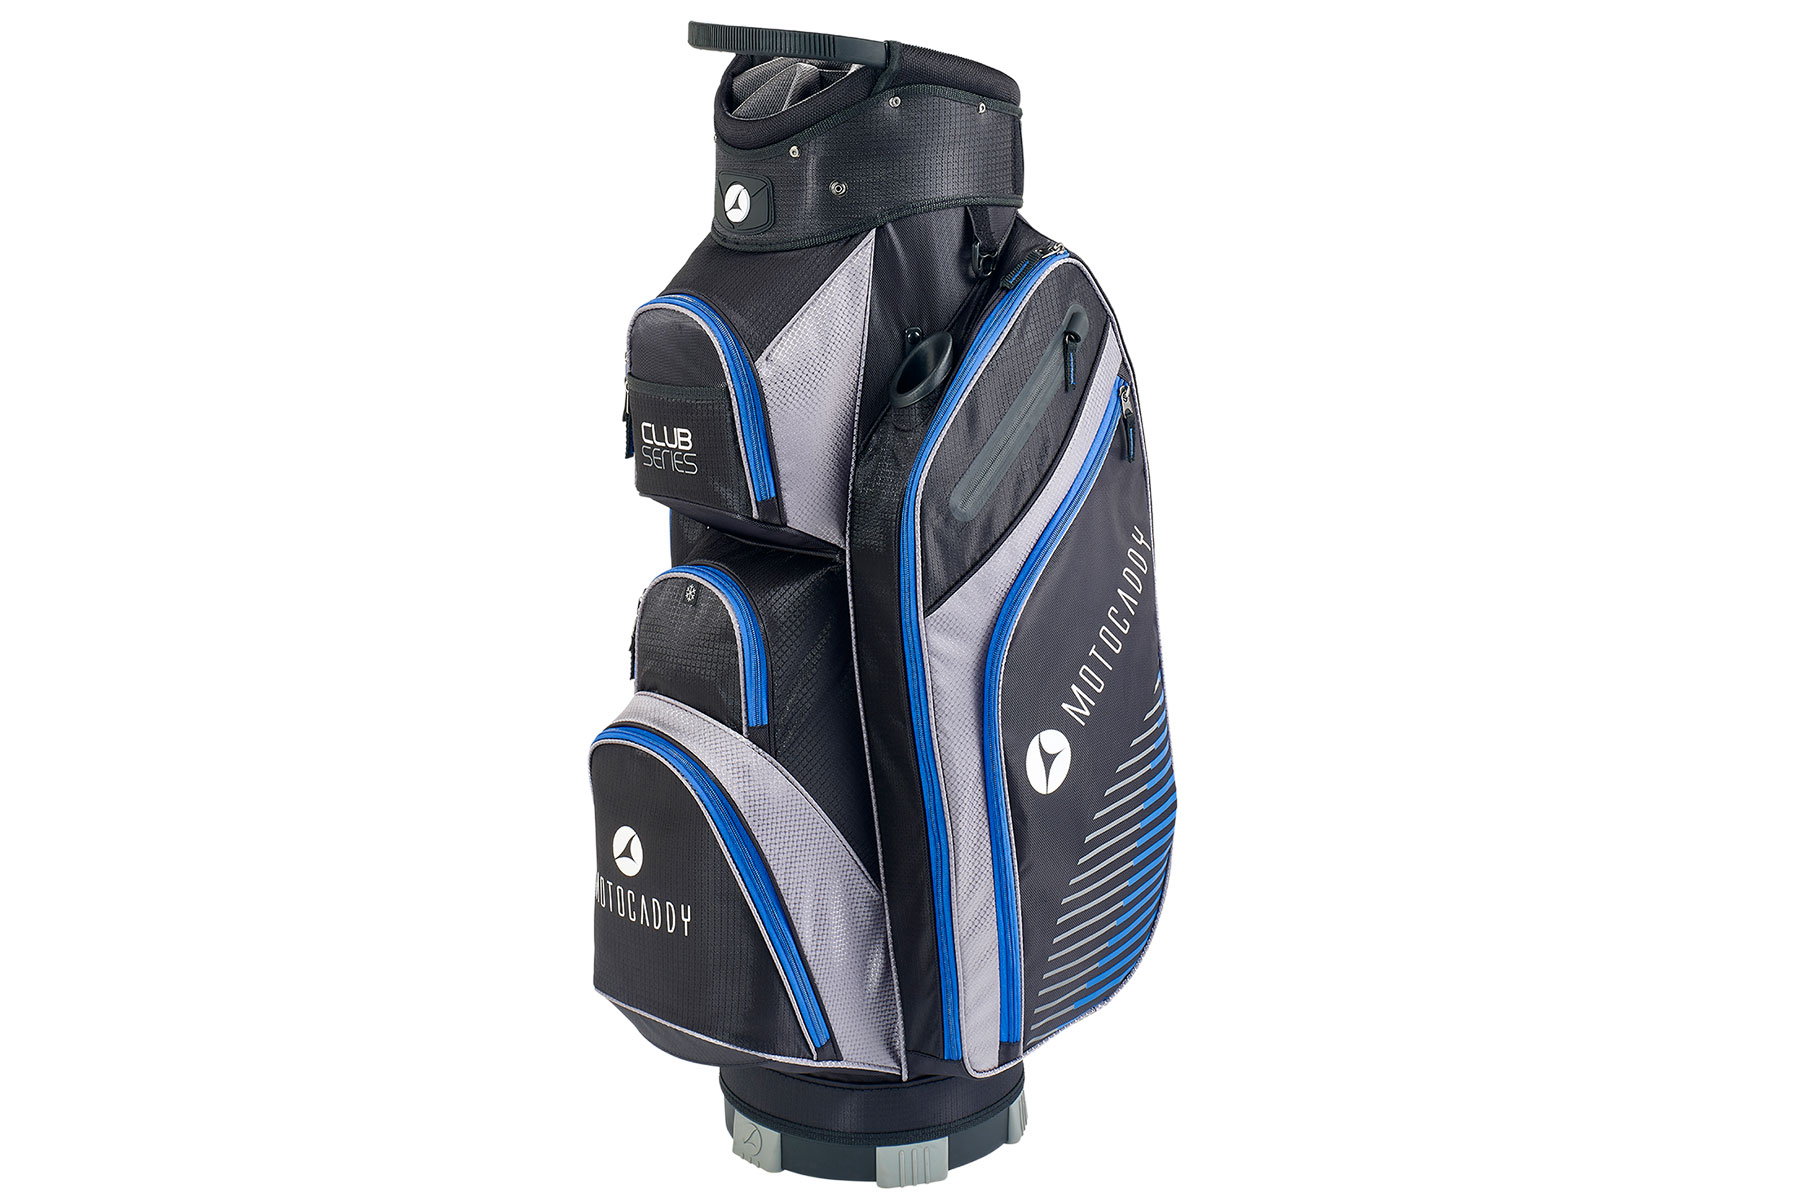 Try and buy the latest Golf Trolley Accessories at Europe's Largest Golf Retailer. Biggest range of Accessories for Trolleys from Motocaddy, PowaKaddy, Stewart Golf, Masters & many more. Free Custom Fitting Expert Advice by PGA Pros Over UK Stores Price Match In-store Collection Free IE Delivery over 99€.